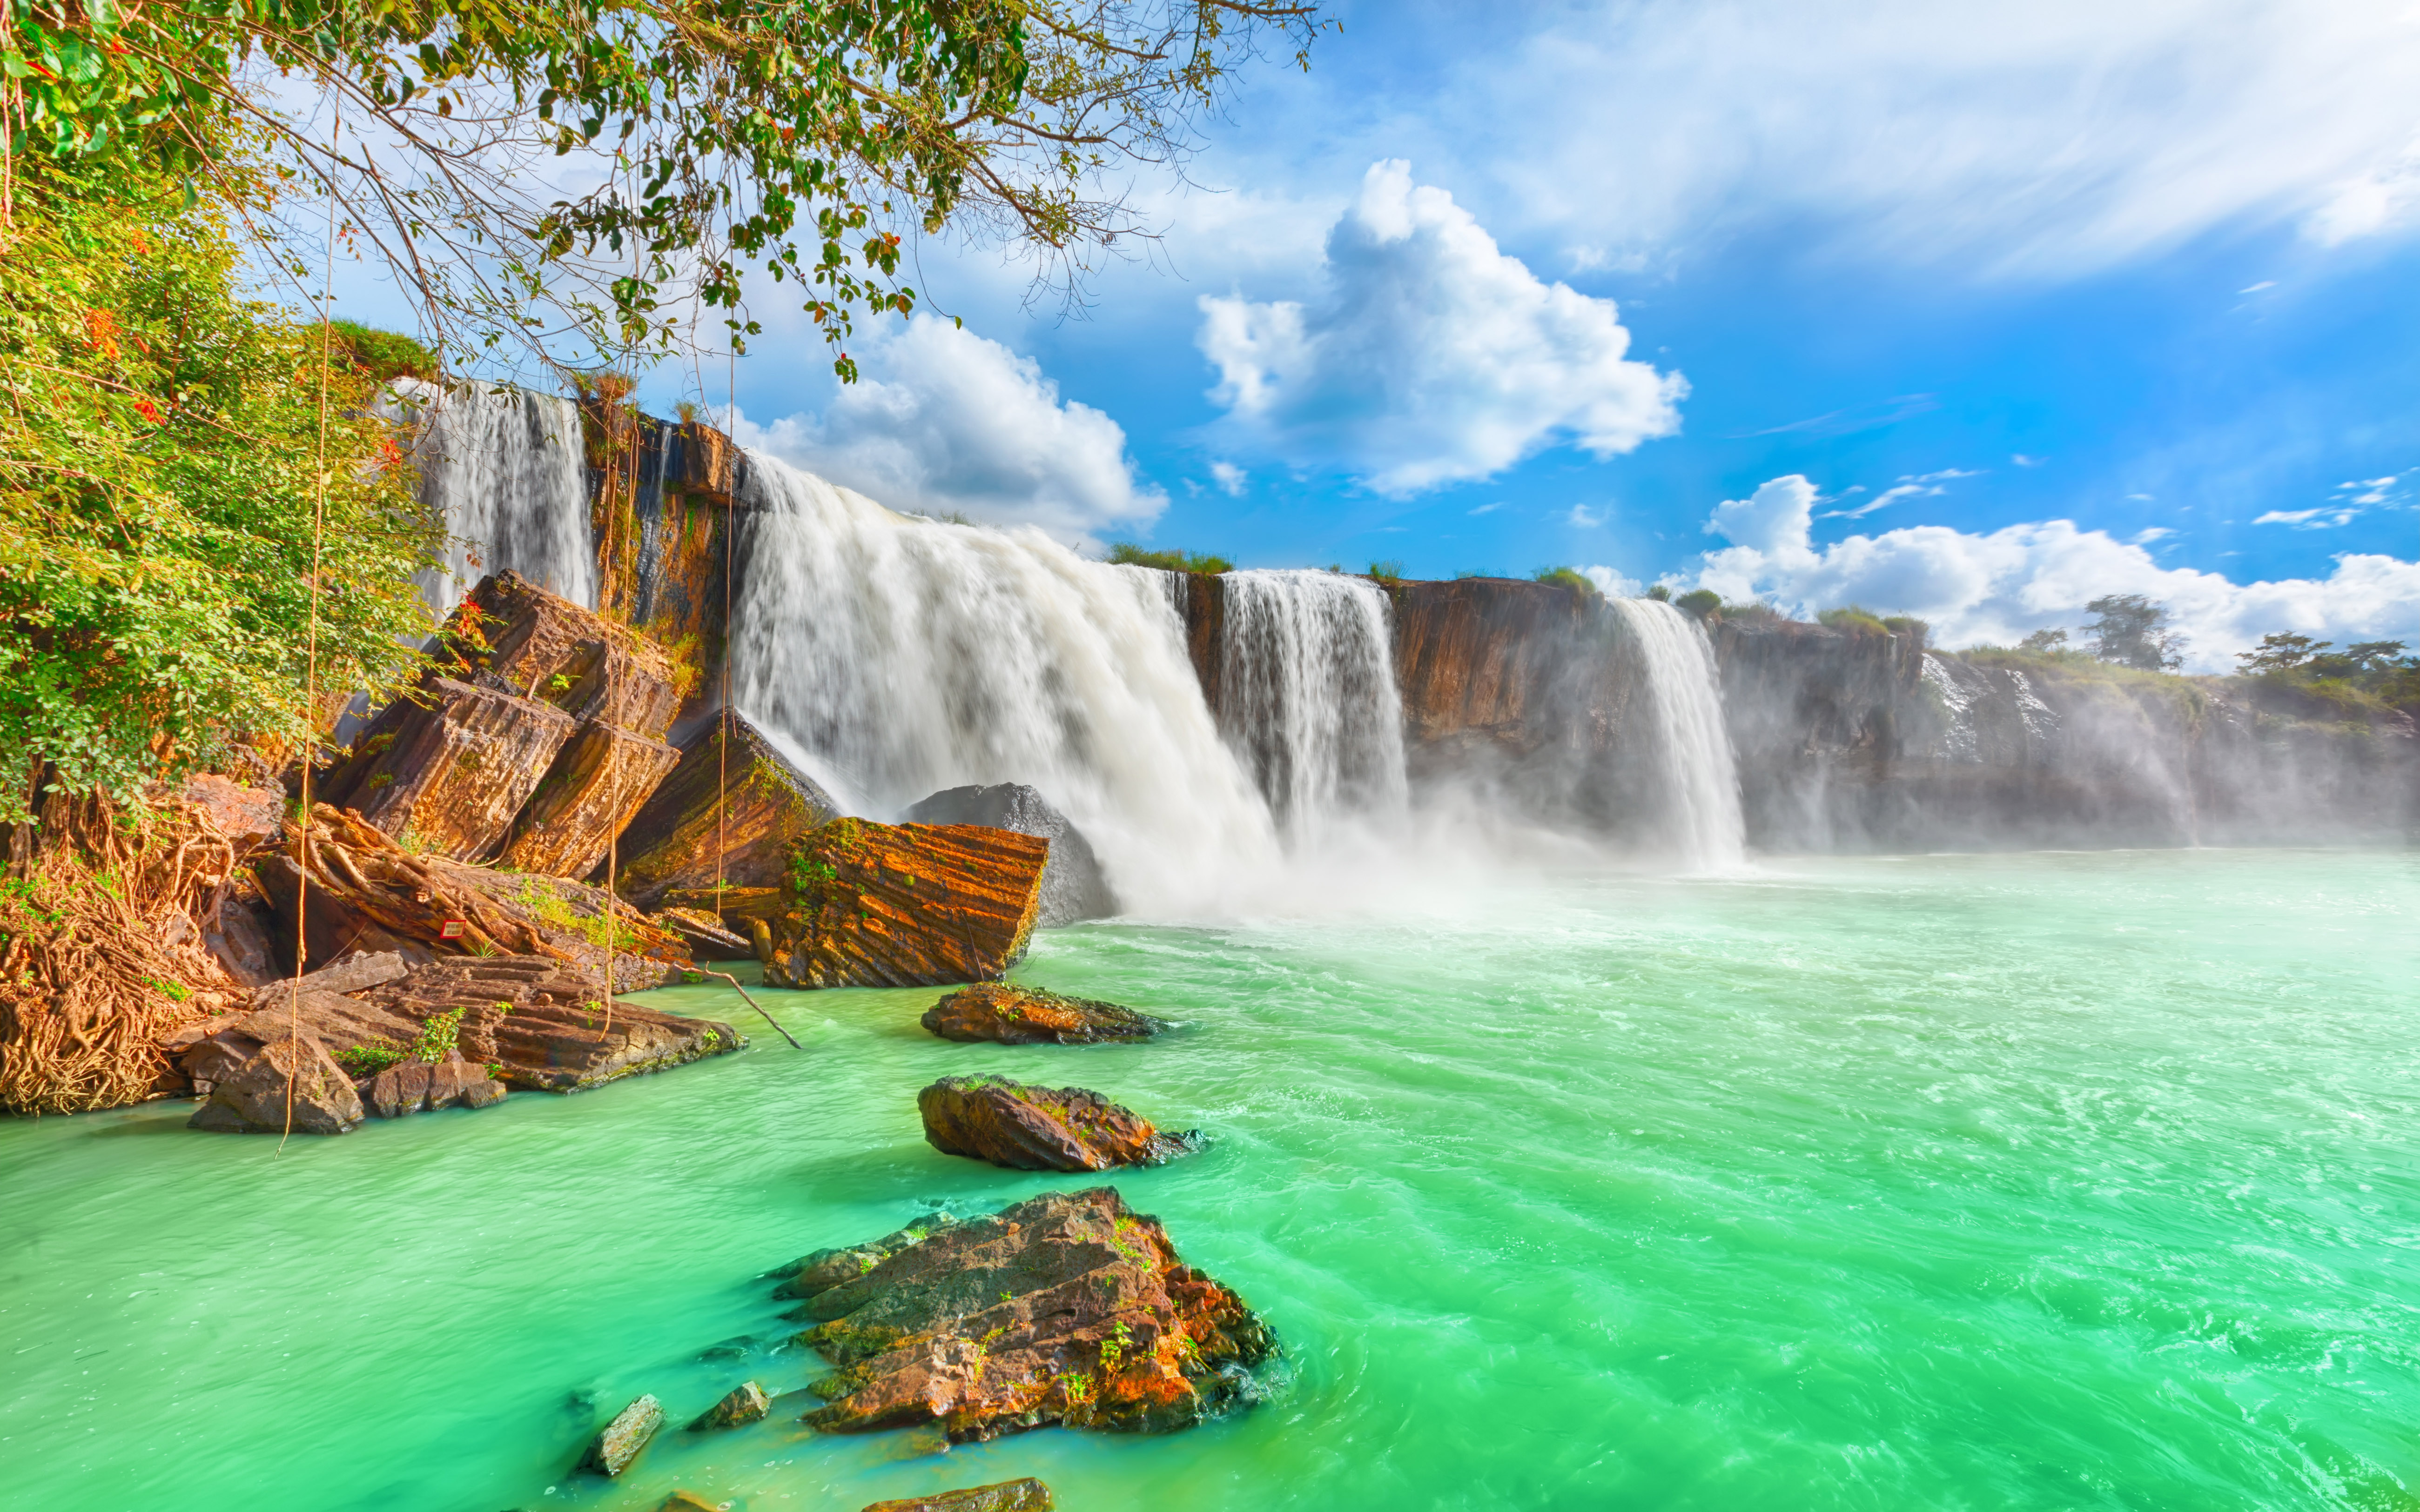 Victoria Falls Hd Wallpaper Dry Nur Beautiful Waterfall In Vietnam With Turquoise